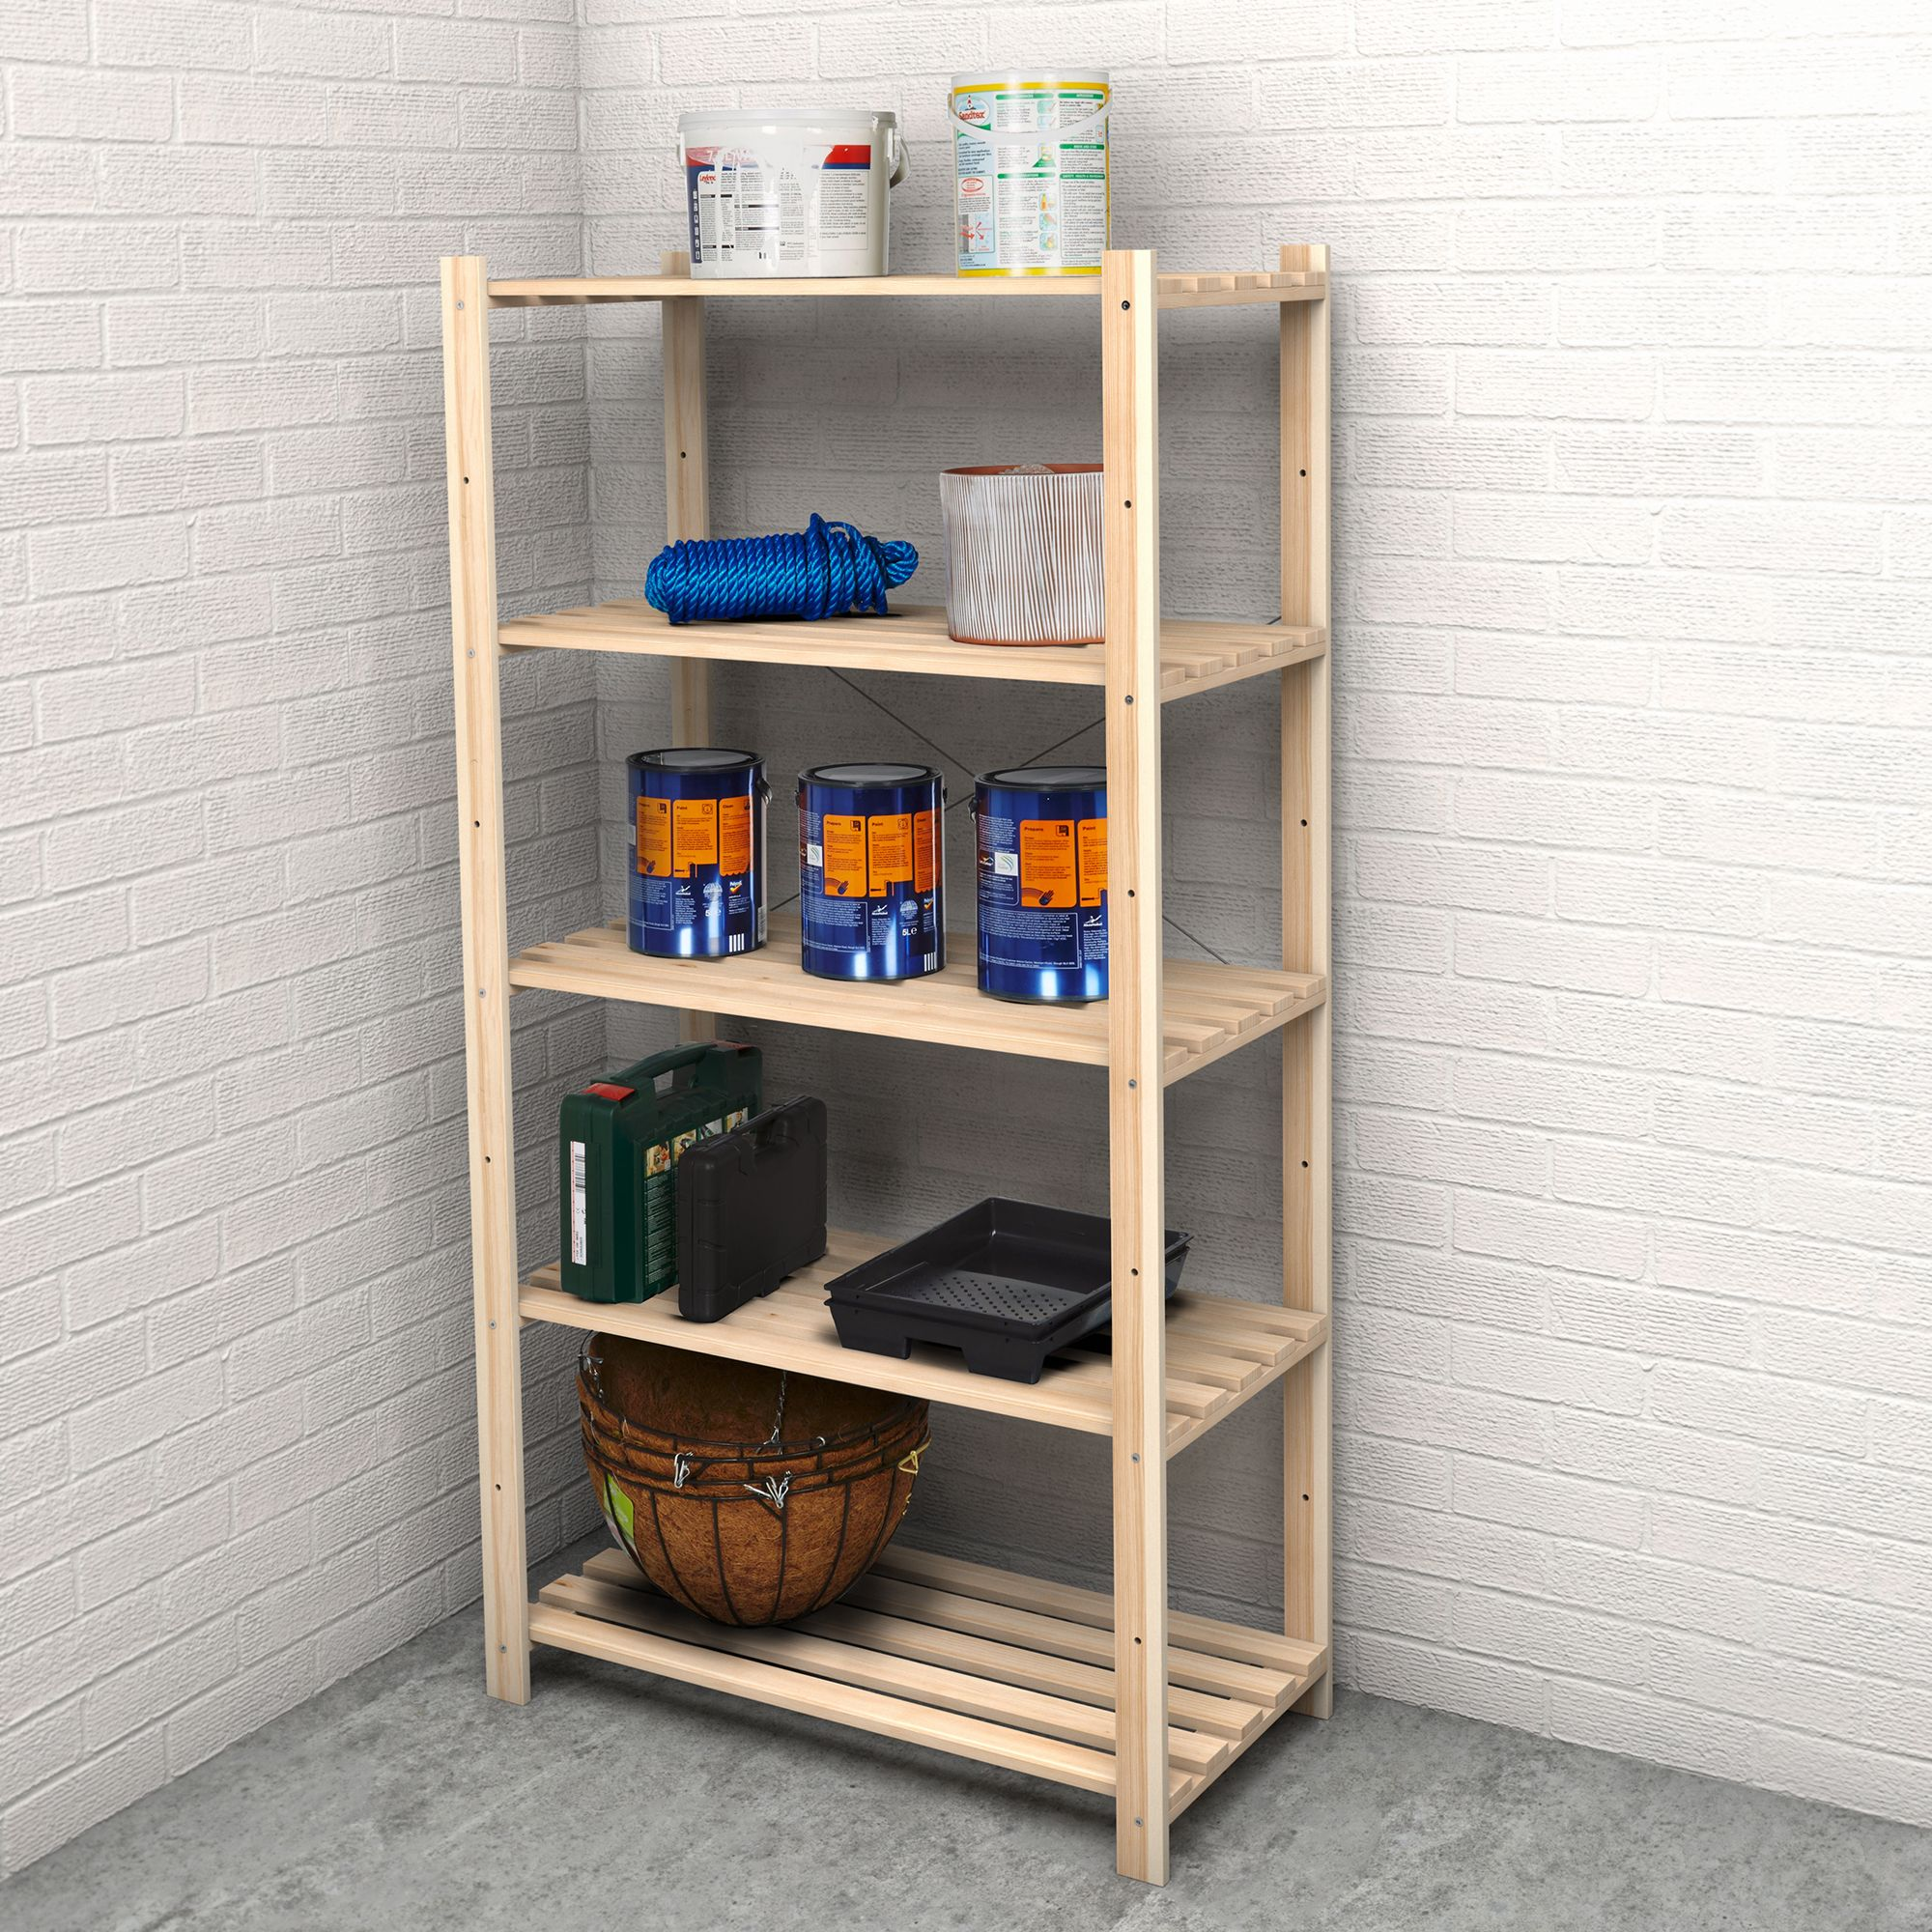 Wooden Shelving Units